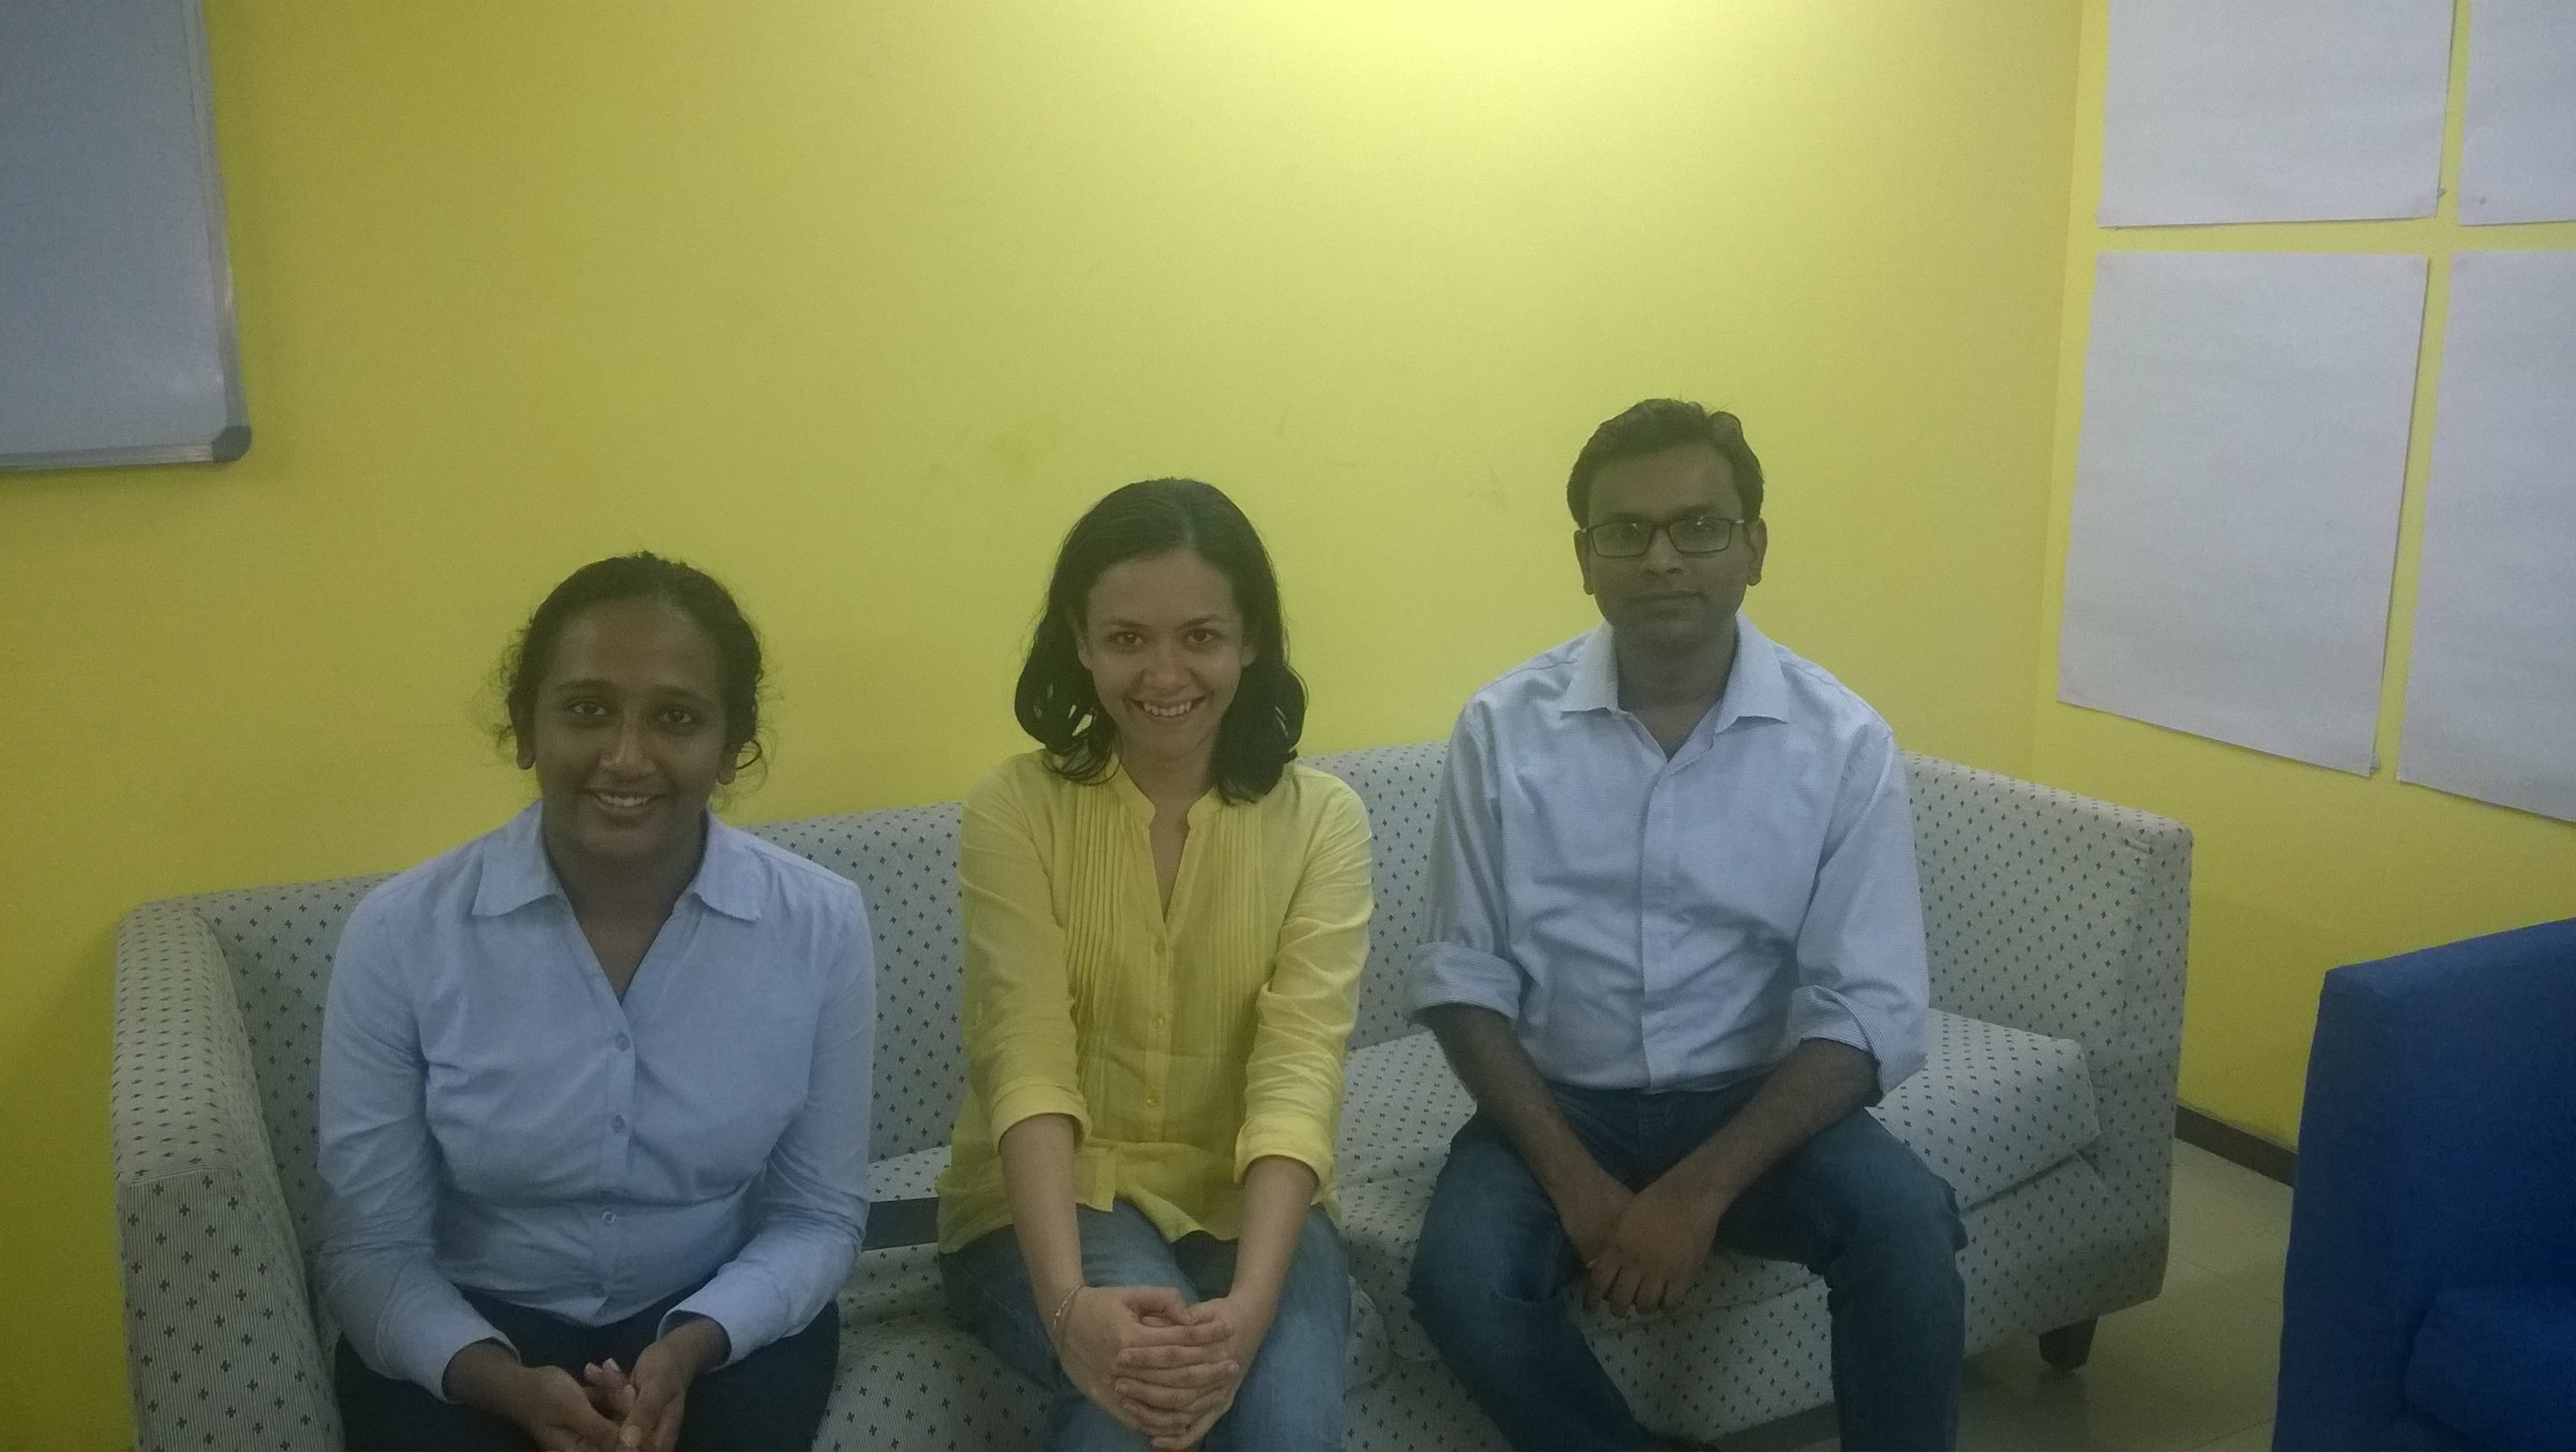 Three of Nyaaya's five core team members: Nidhisha Philip, Srijoni Sen and Kunal Rachhoya. Photo courtesy Nyaaya.in